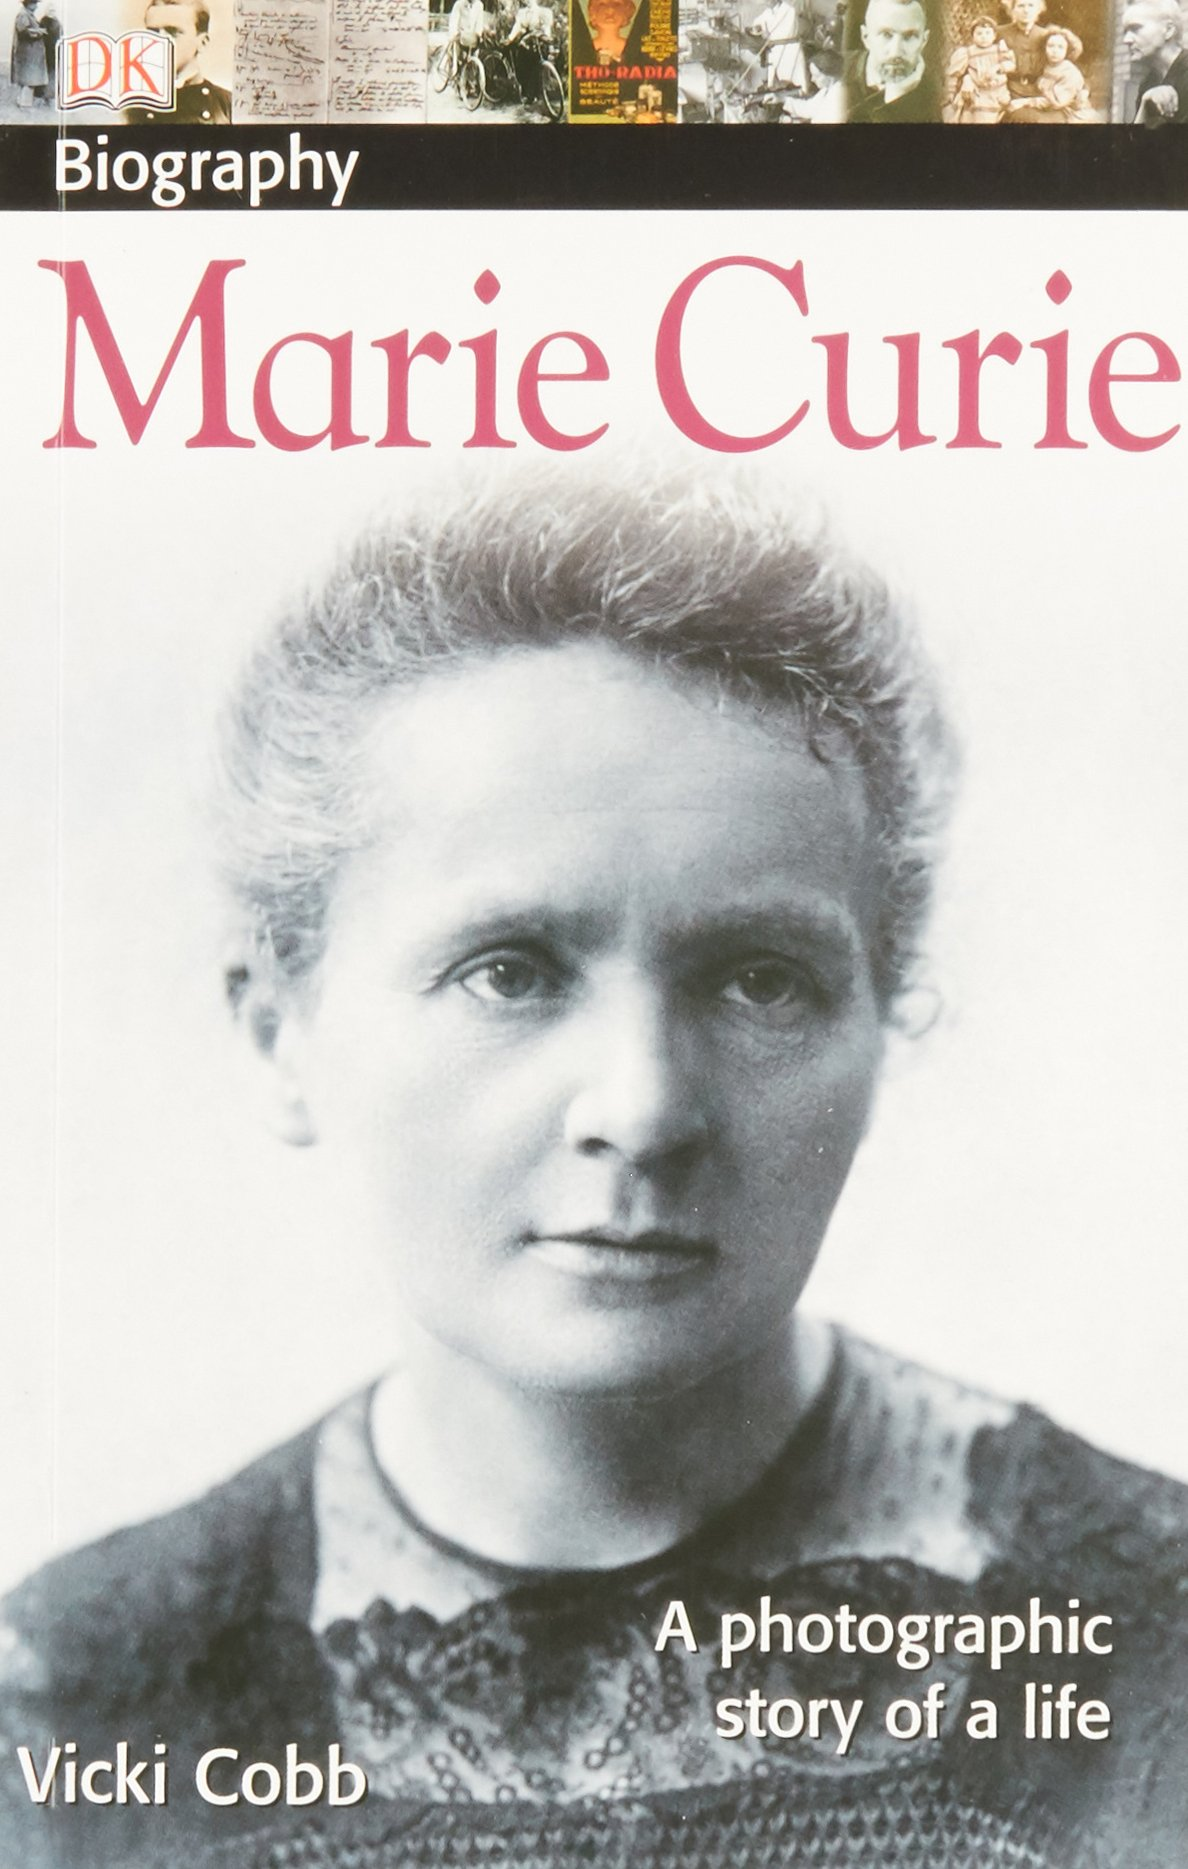 marie curie short biography essay Their happiness was short  biography of marie and pierre curie essay  the life and accomplishments of marie curie essay 1370 words | 6 pages marie curie was.